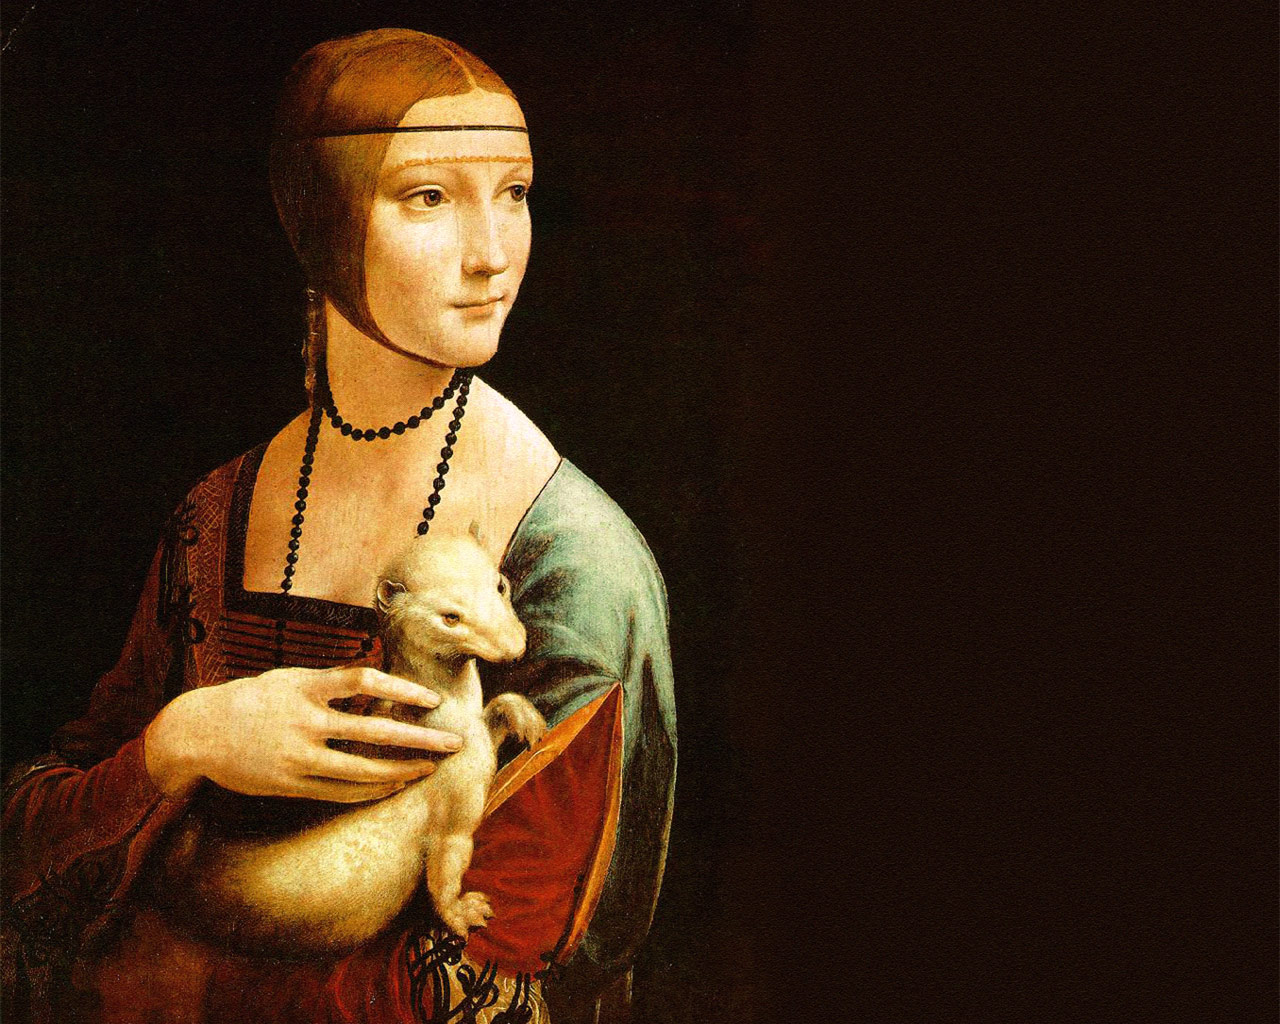 beauty, love and soul: leonardo da vinci (art) Da Vinci Paintings